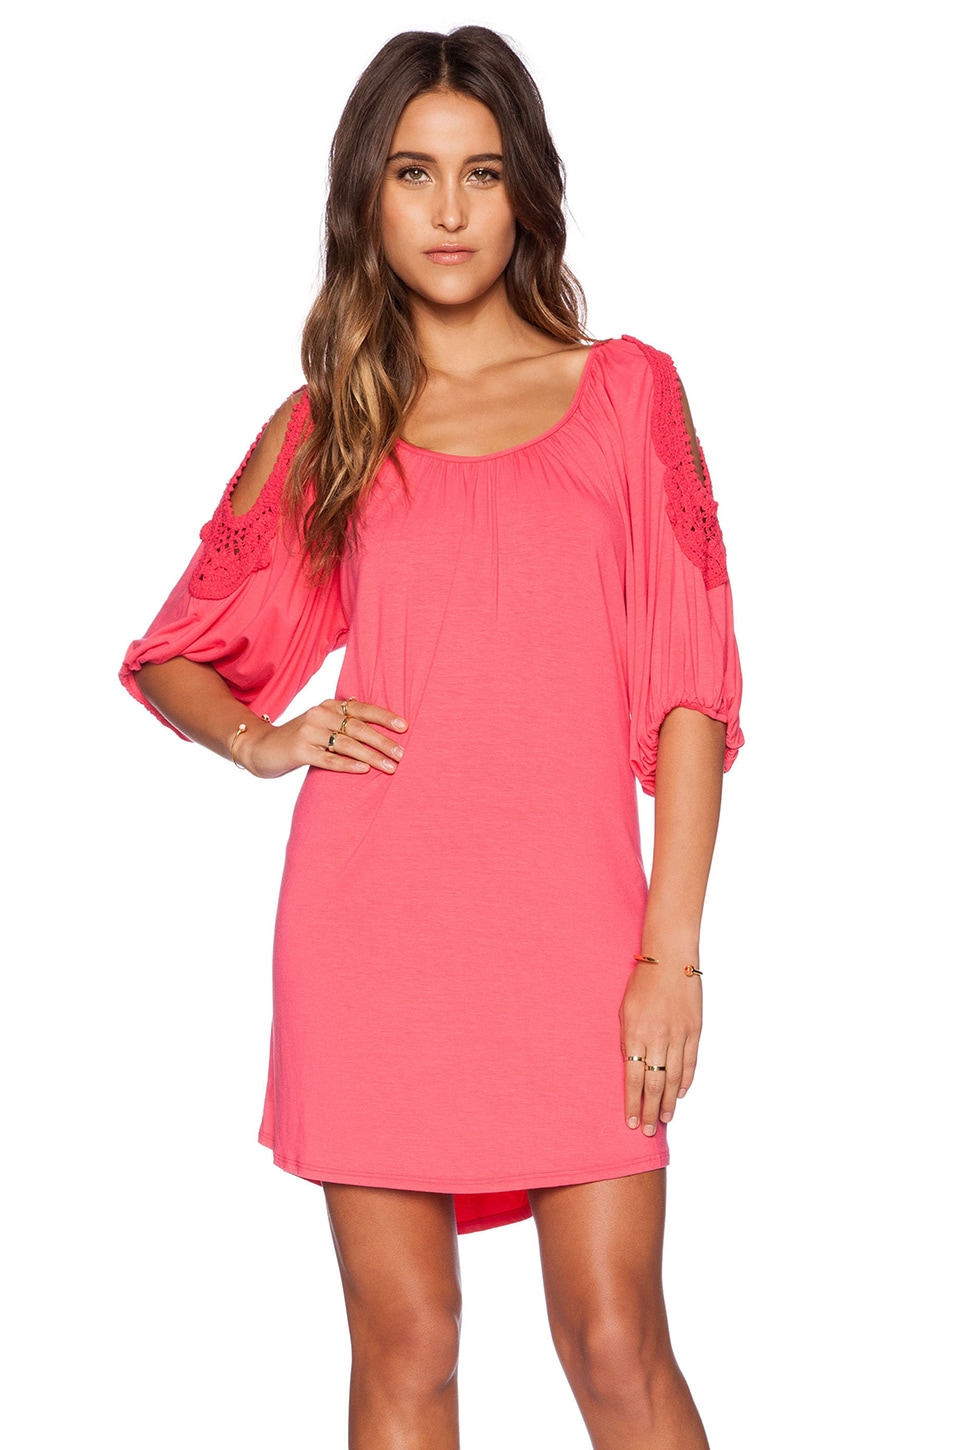 VAVA by Joy Han Mila Smock Dress in Coral